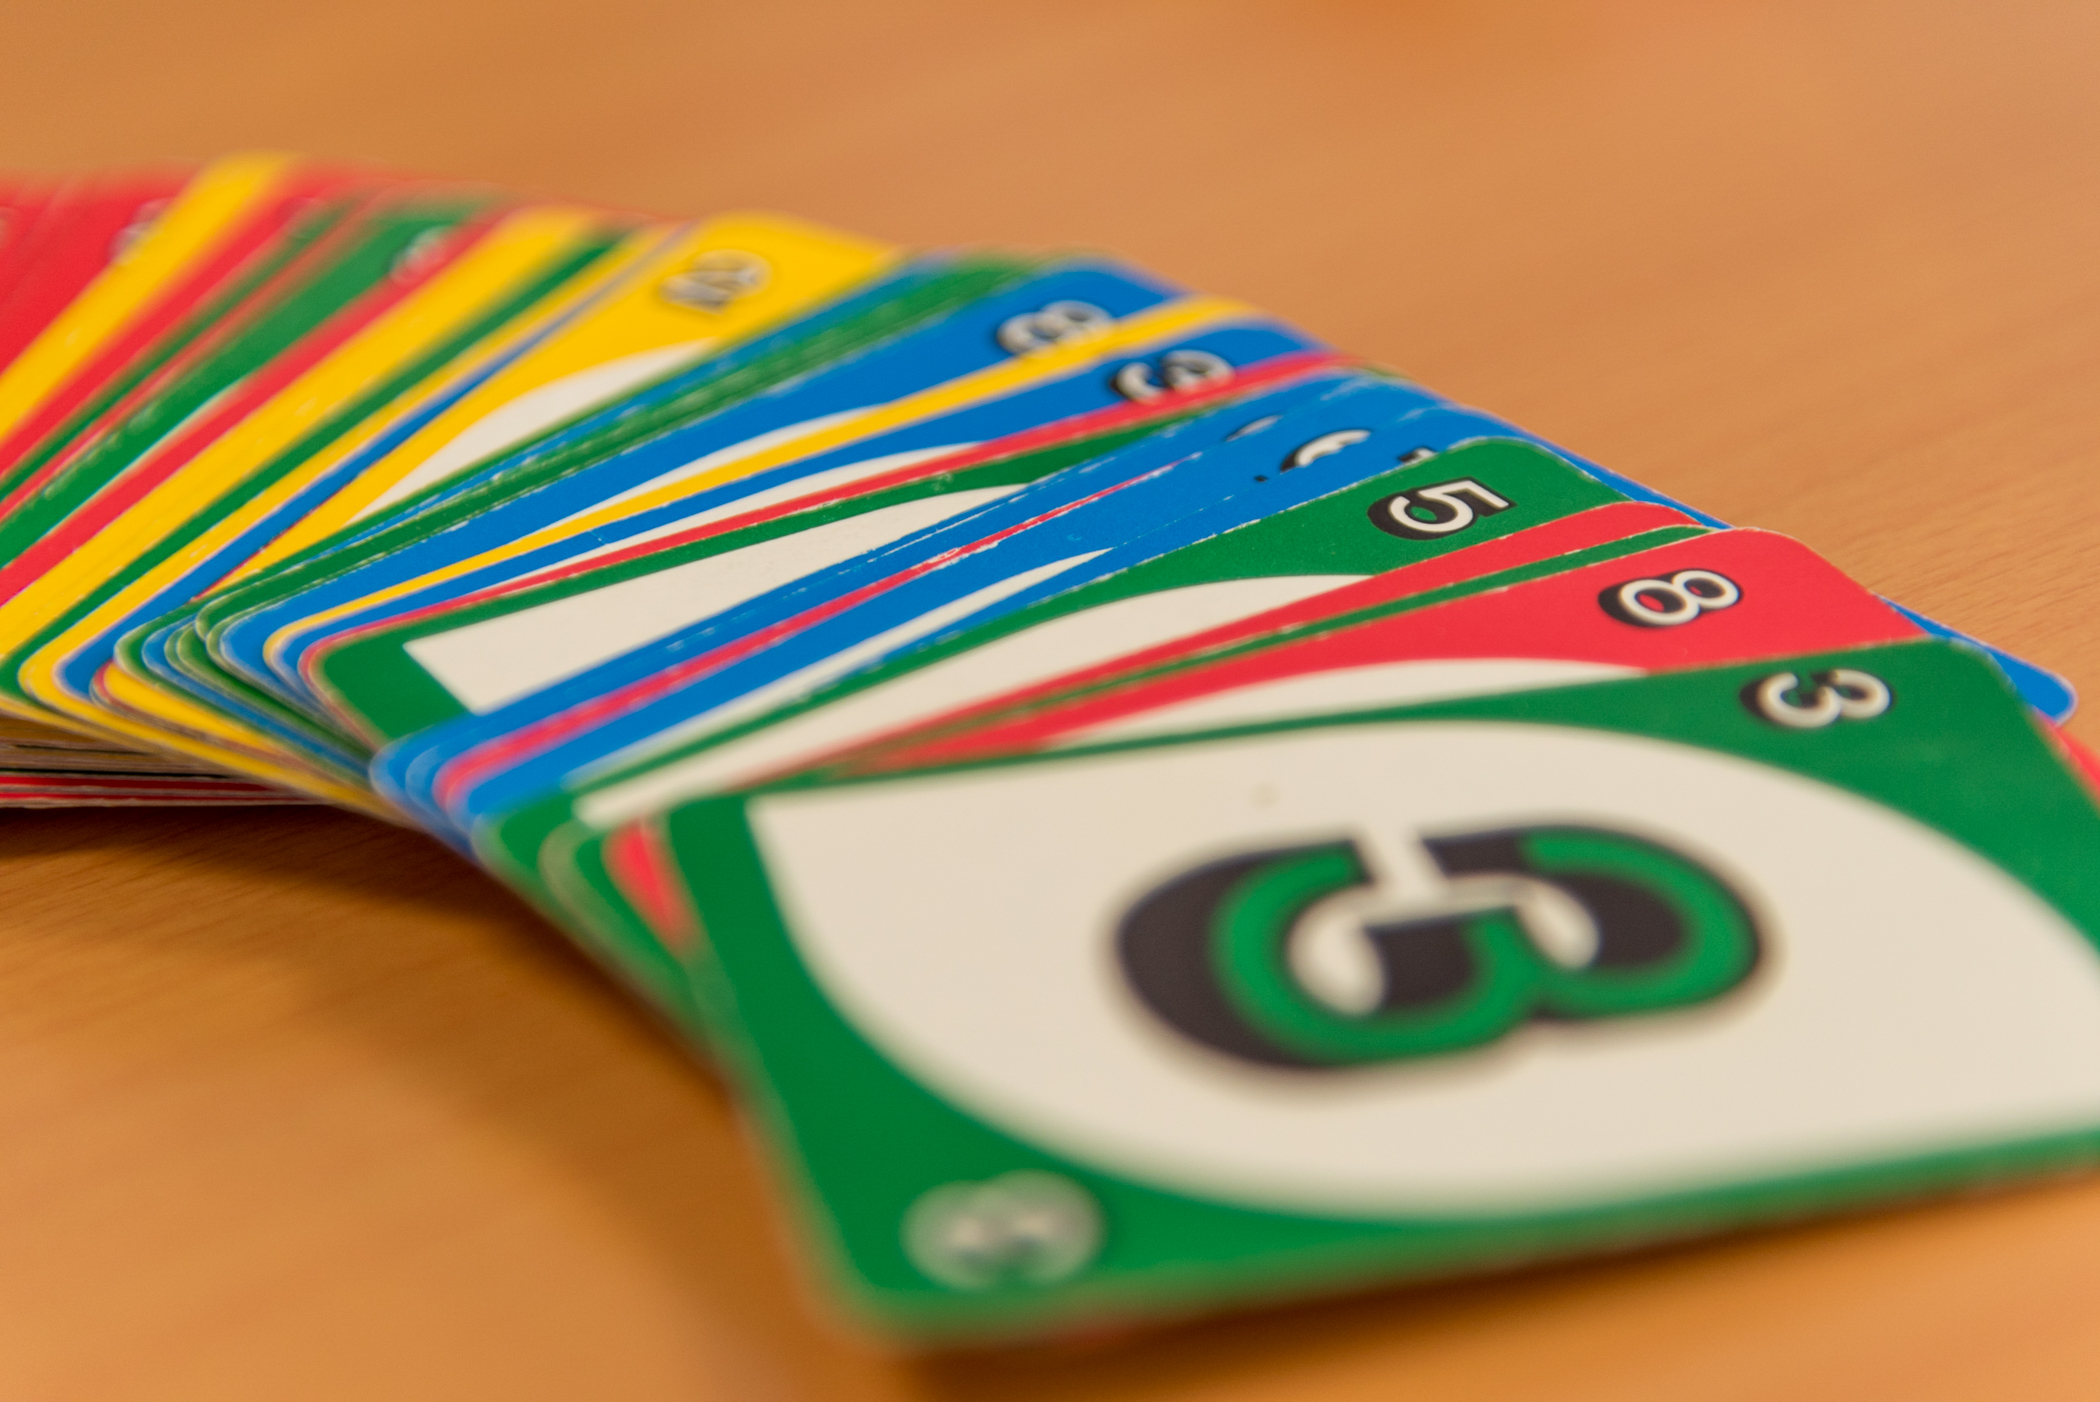 Children's card games are used as training tools and props in the German for Refugees course at the Wycliffe Germany offices in Holzhausen, Germany. Participants use them in language games intended to teach both numbers and colors simultaneously. The German for Refugees course is a train-the-trainer course designed to equip Germans to teach their language to recently arriving refugees.